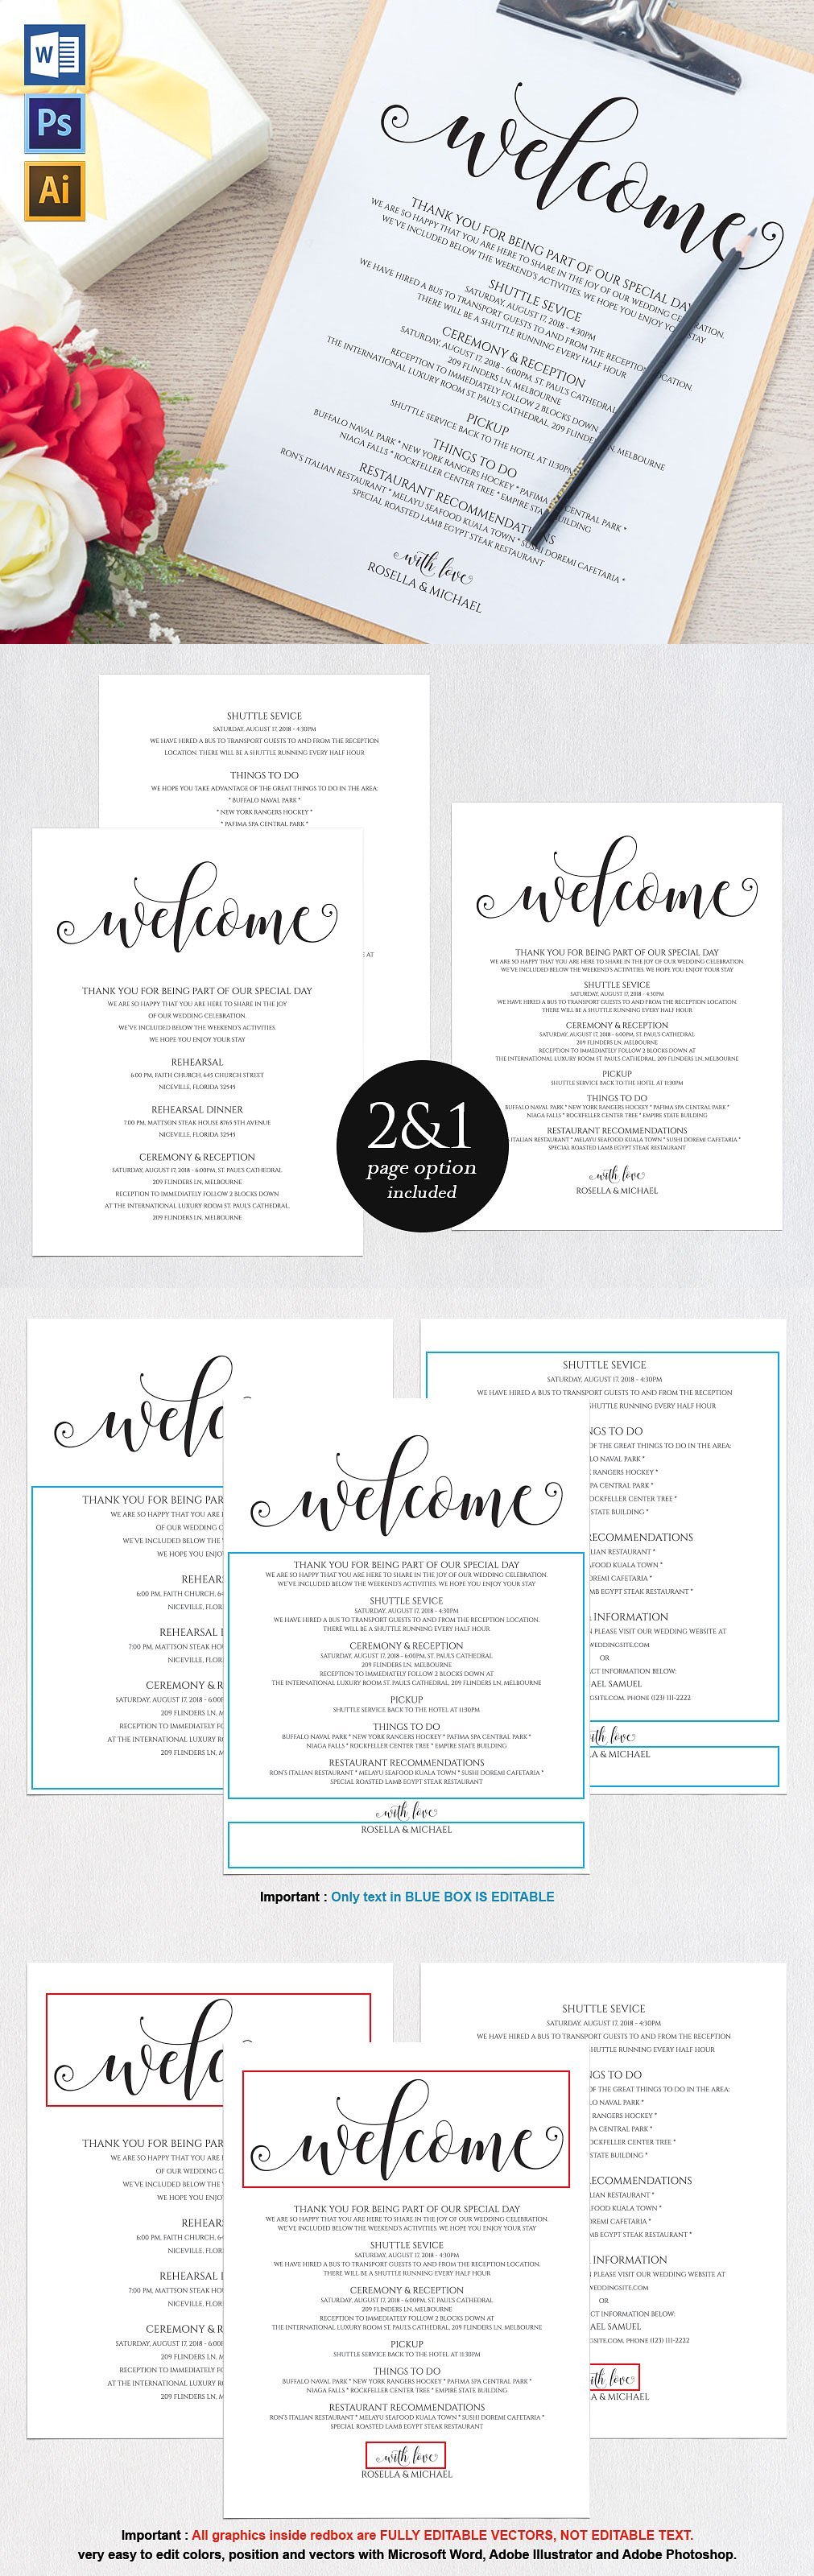 Wedding Itinerary Wpc Templates Ai Eps Psd  Invitation